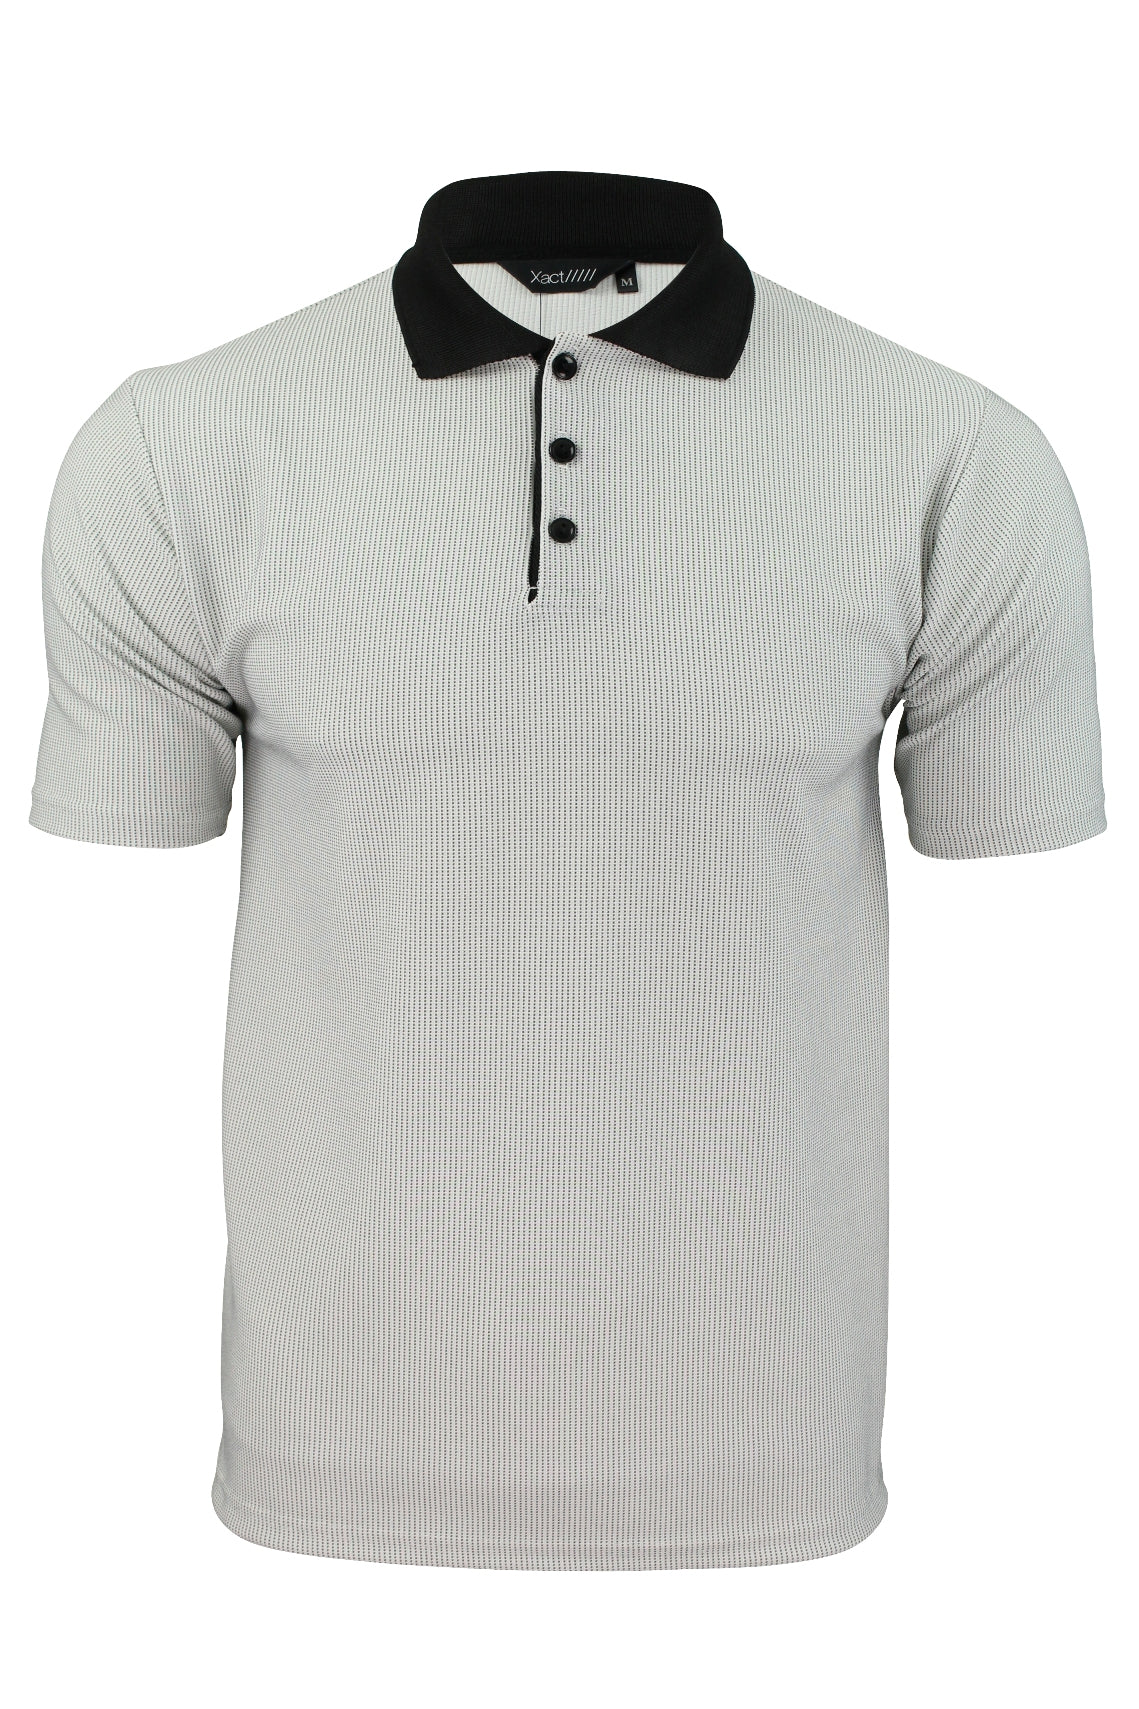 Mens Polo Shirt by Xact Clothing Short Sleeved-Main Image